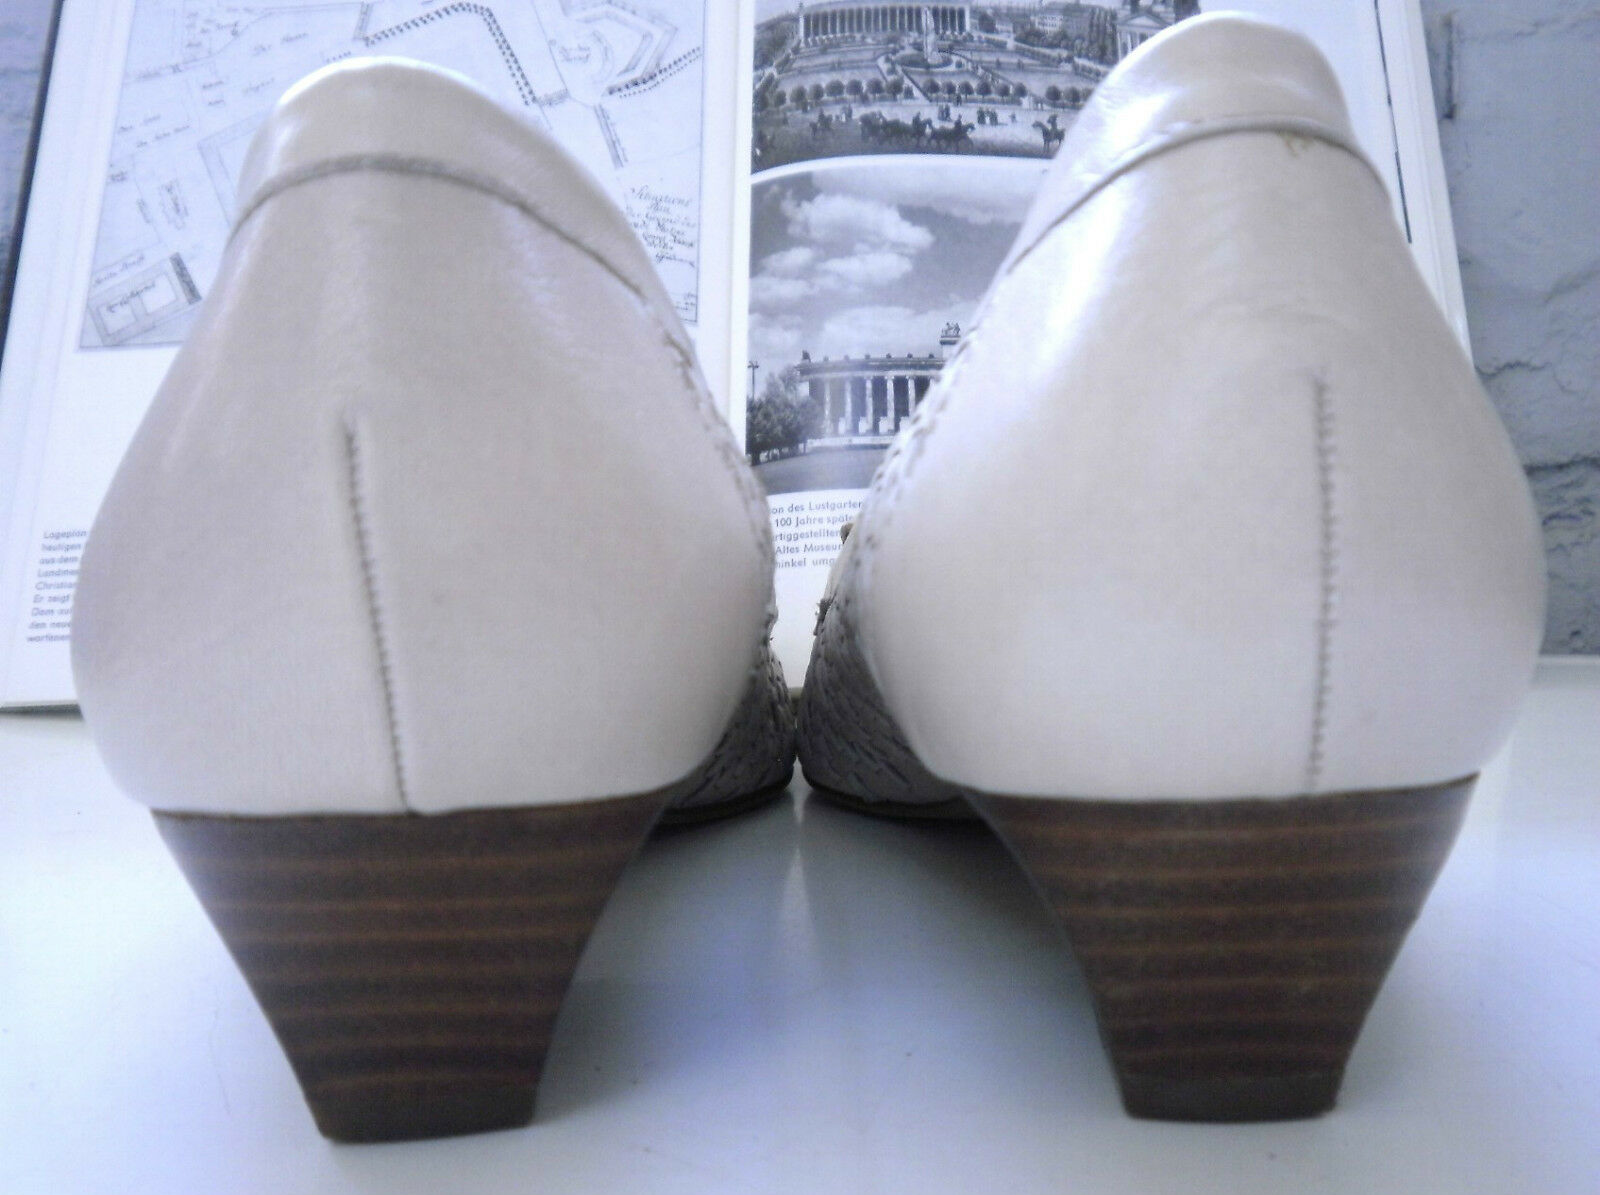 SCHOLL Damen Pumps Halbschuhe NOS True Vintage Schuhe Halbschuhe Pumps UK 7 made Germany Gr. 41 086e9b